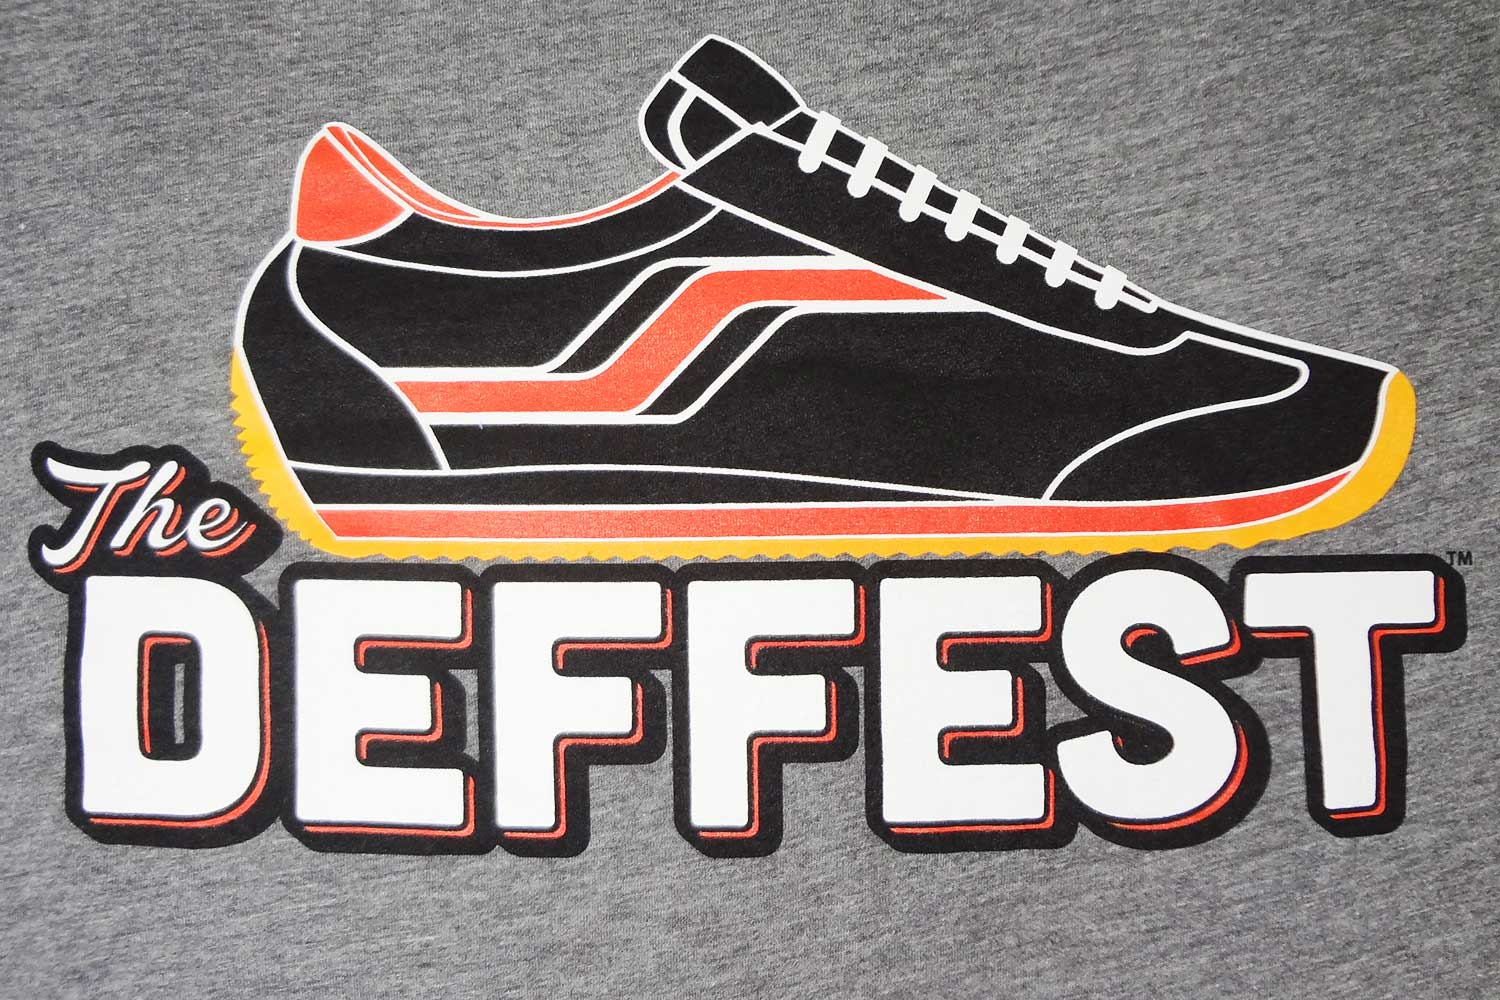 29e0d2af7ce3 The Deffest retro sneaker blog logo t-shirt at Big Cartel